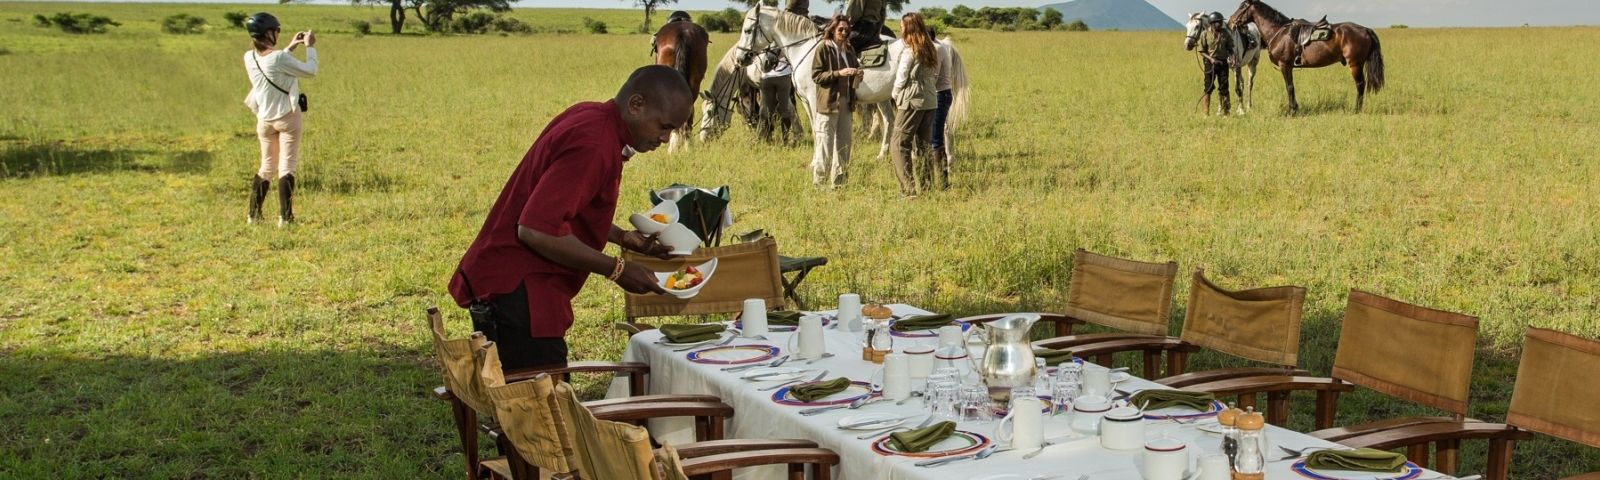 Enchanting Travels - Kenya Tours - Chyulu Hills - Ol Donyo Lodge - Bush Breakfast - Is Kenya Safe?